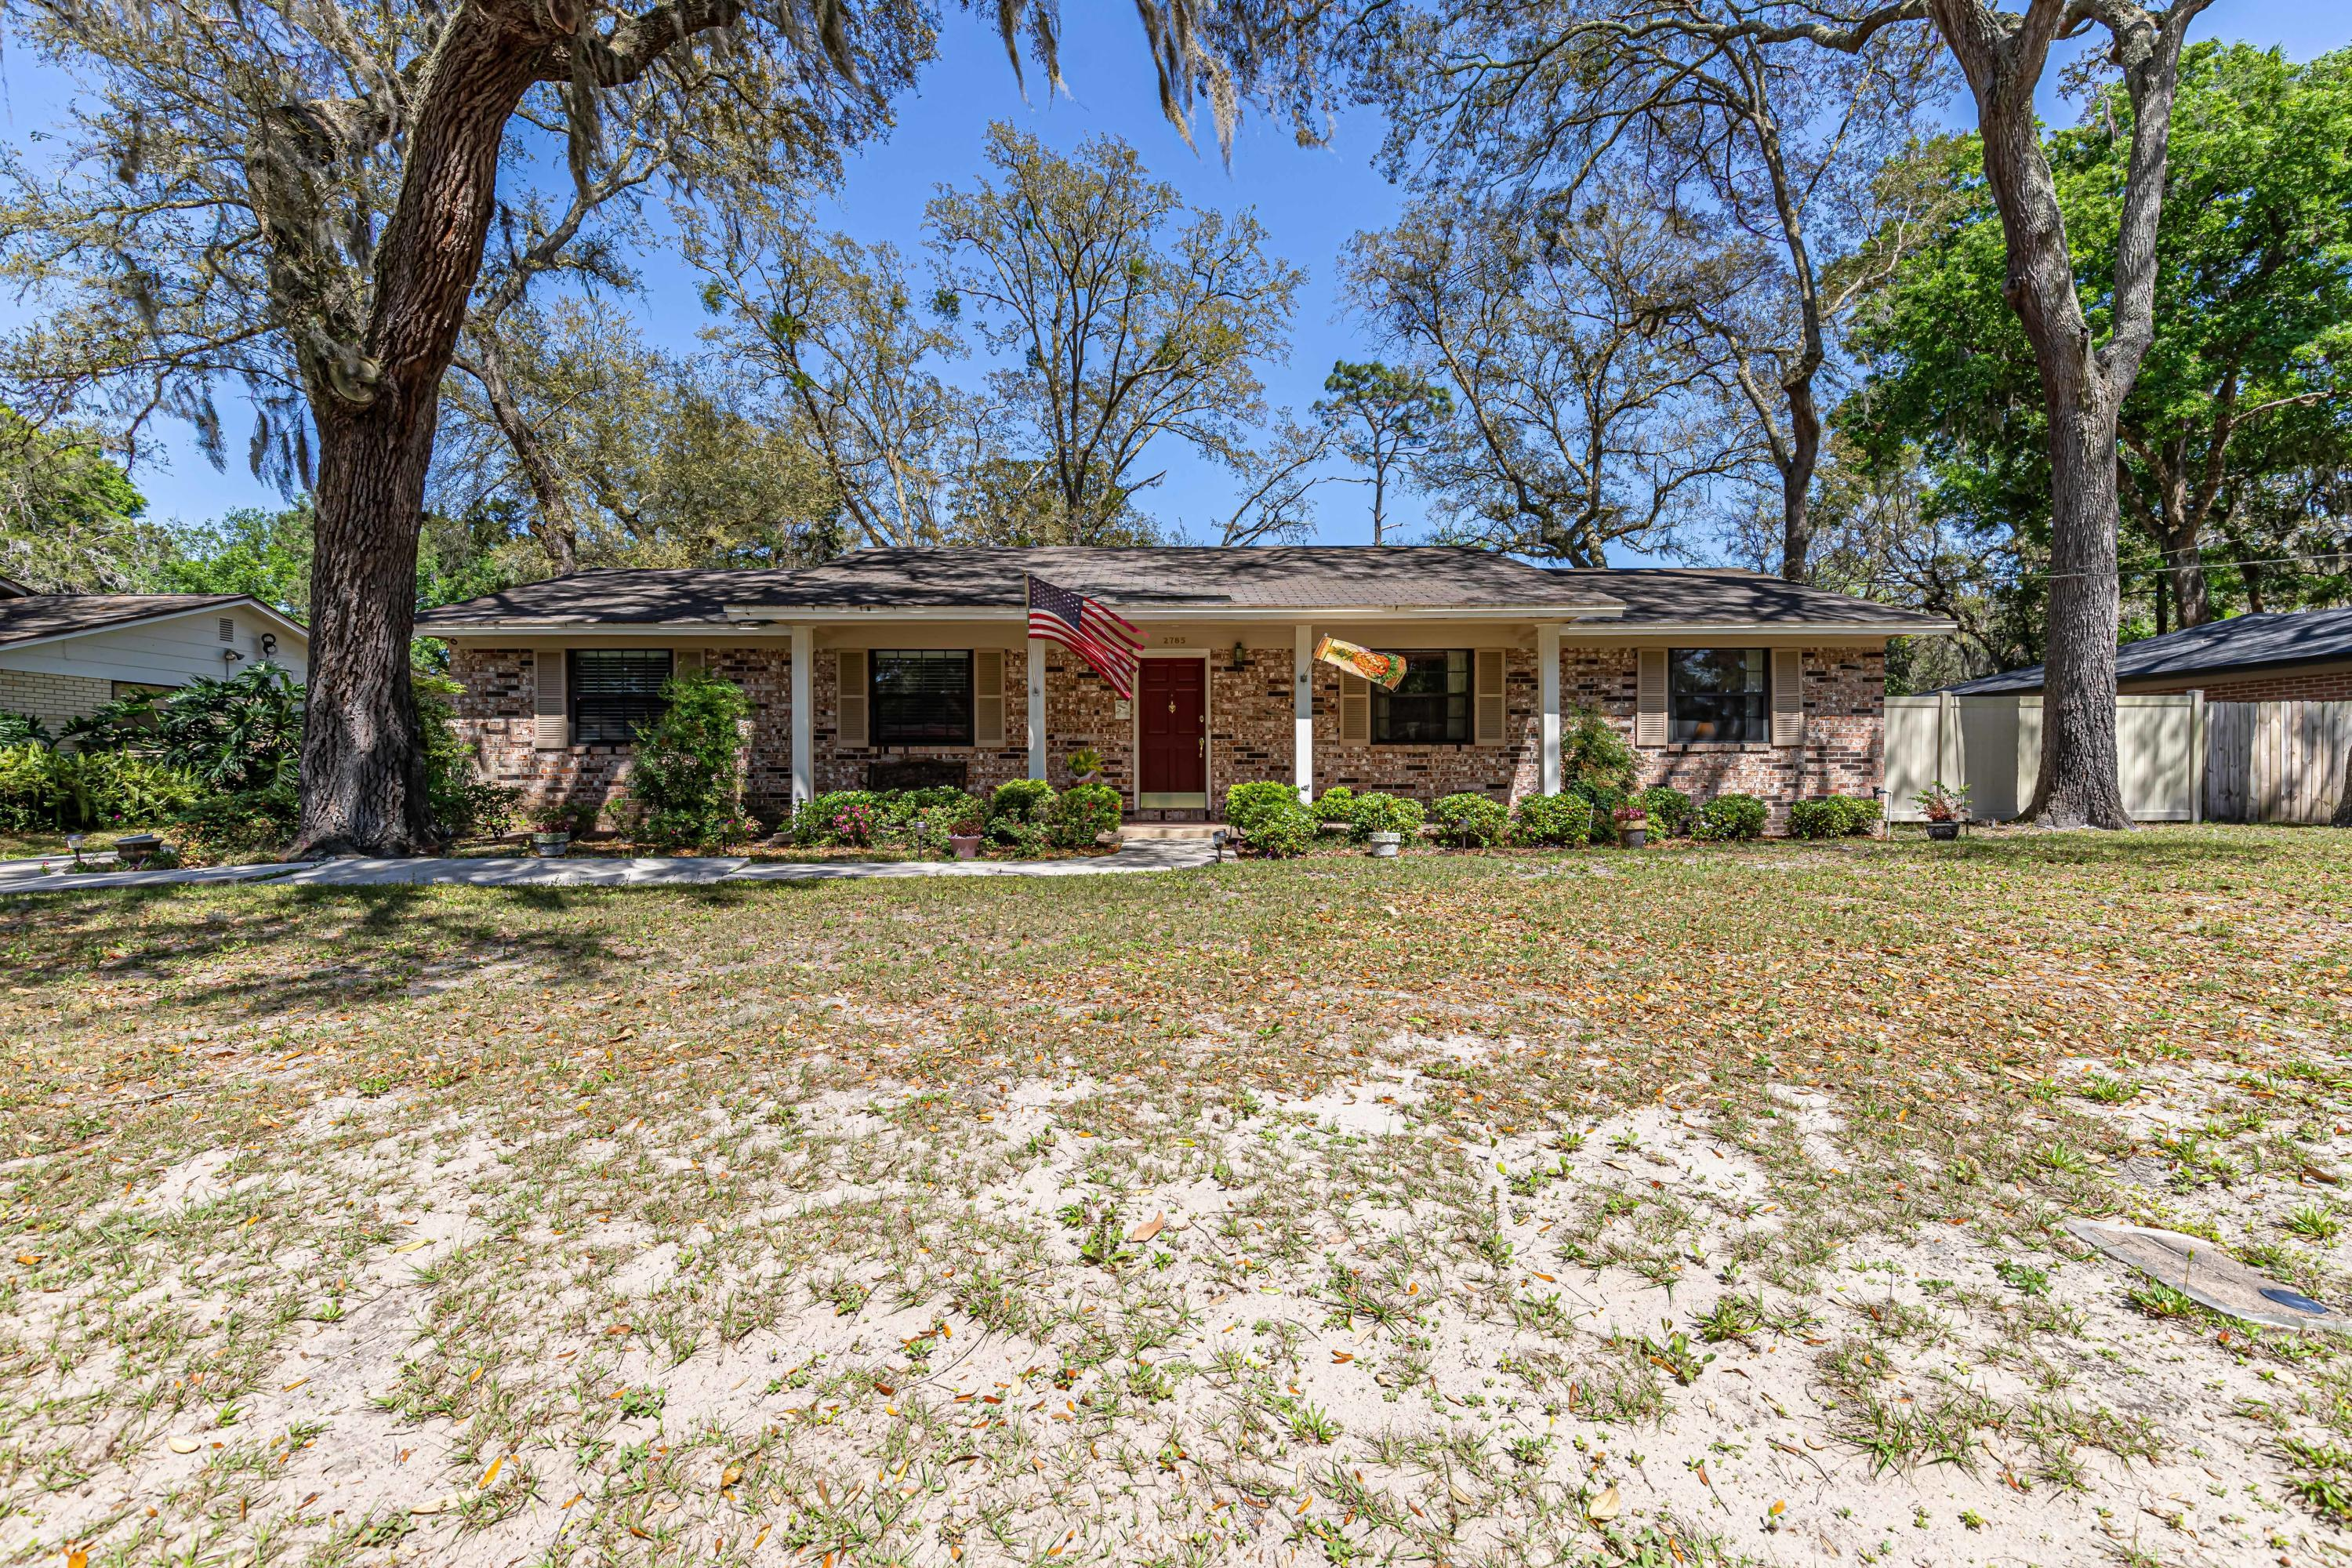 2785 BROOKWOOD, ORANGE PARK, FLORIDA 32073, 3 Bedrooms Bedrooms, ,2 BathroomsBathrooms,Residential,For sale,BROOKWOOD,1103697